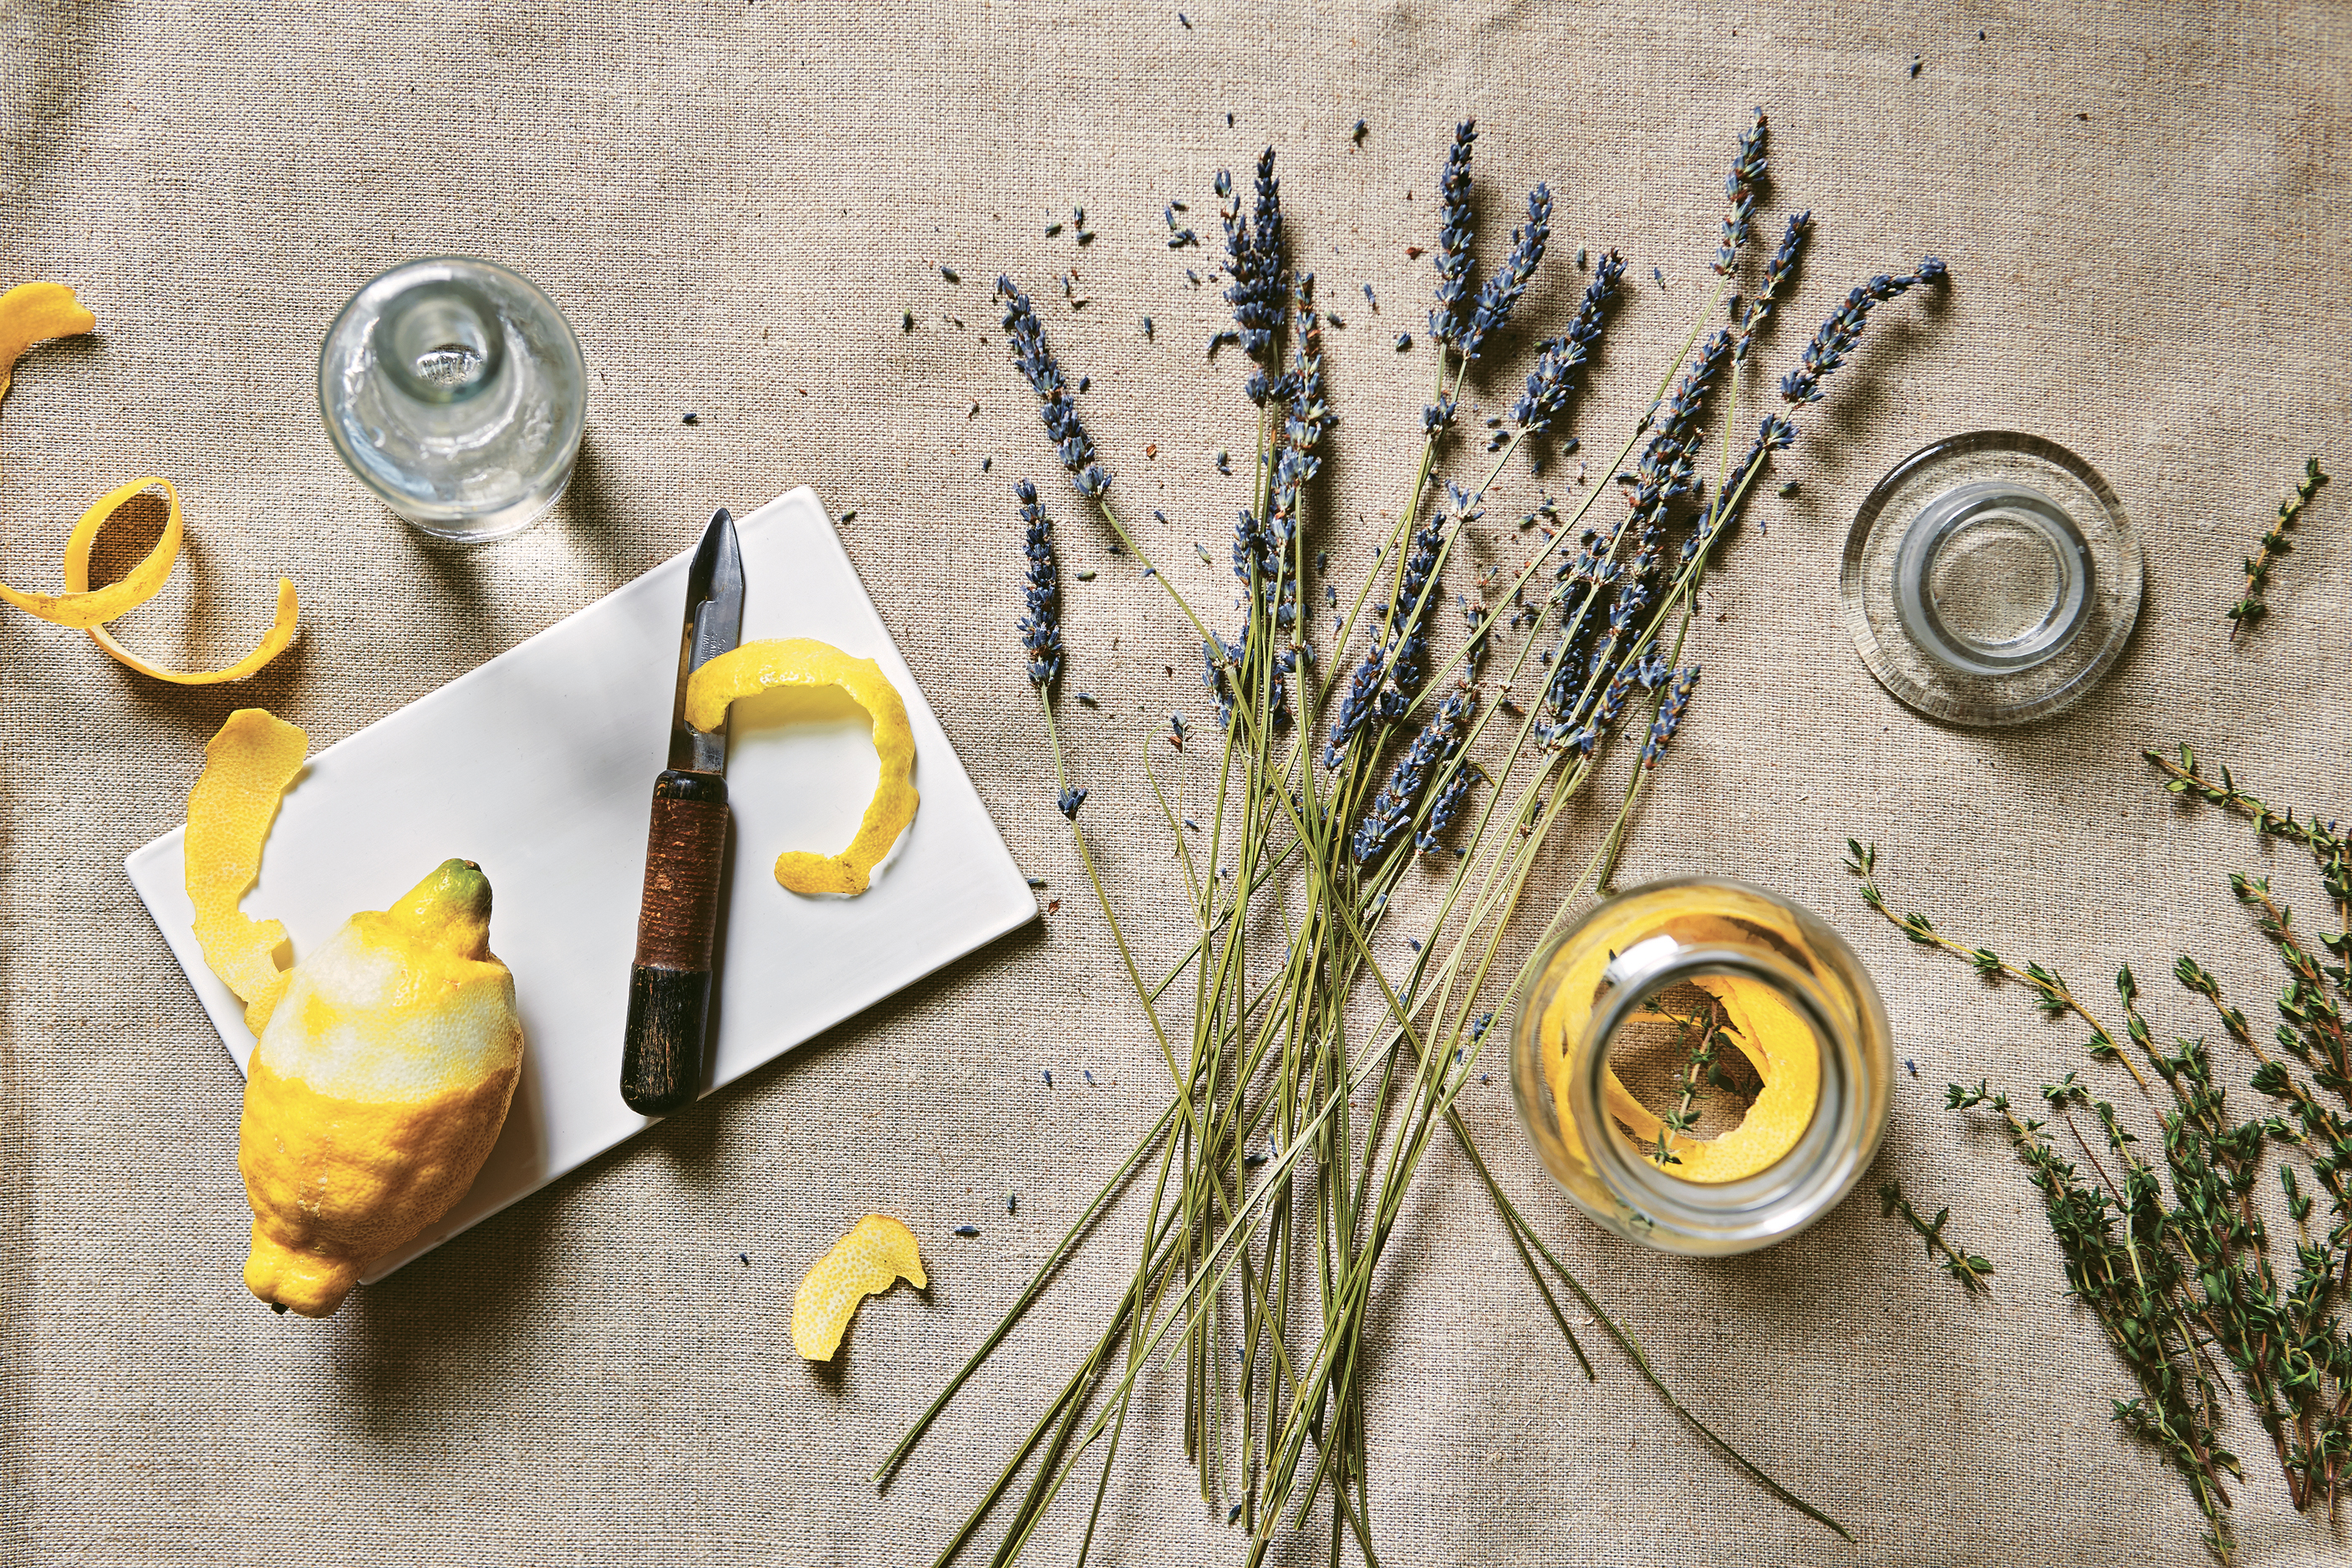 Ingredients for Lemon Lavender & Thyme Concentrate featured in Fresh Clean Home by Wendy Graham, photography Rachel Whiting, published by Pavilion, £12.99. (Rachel Whiting/Pavilion/PA)